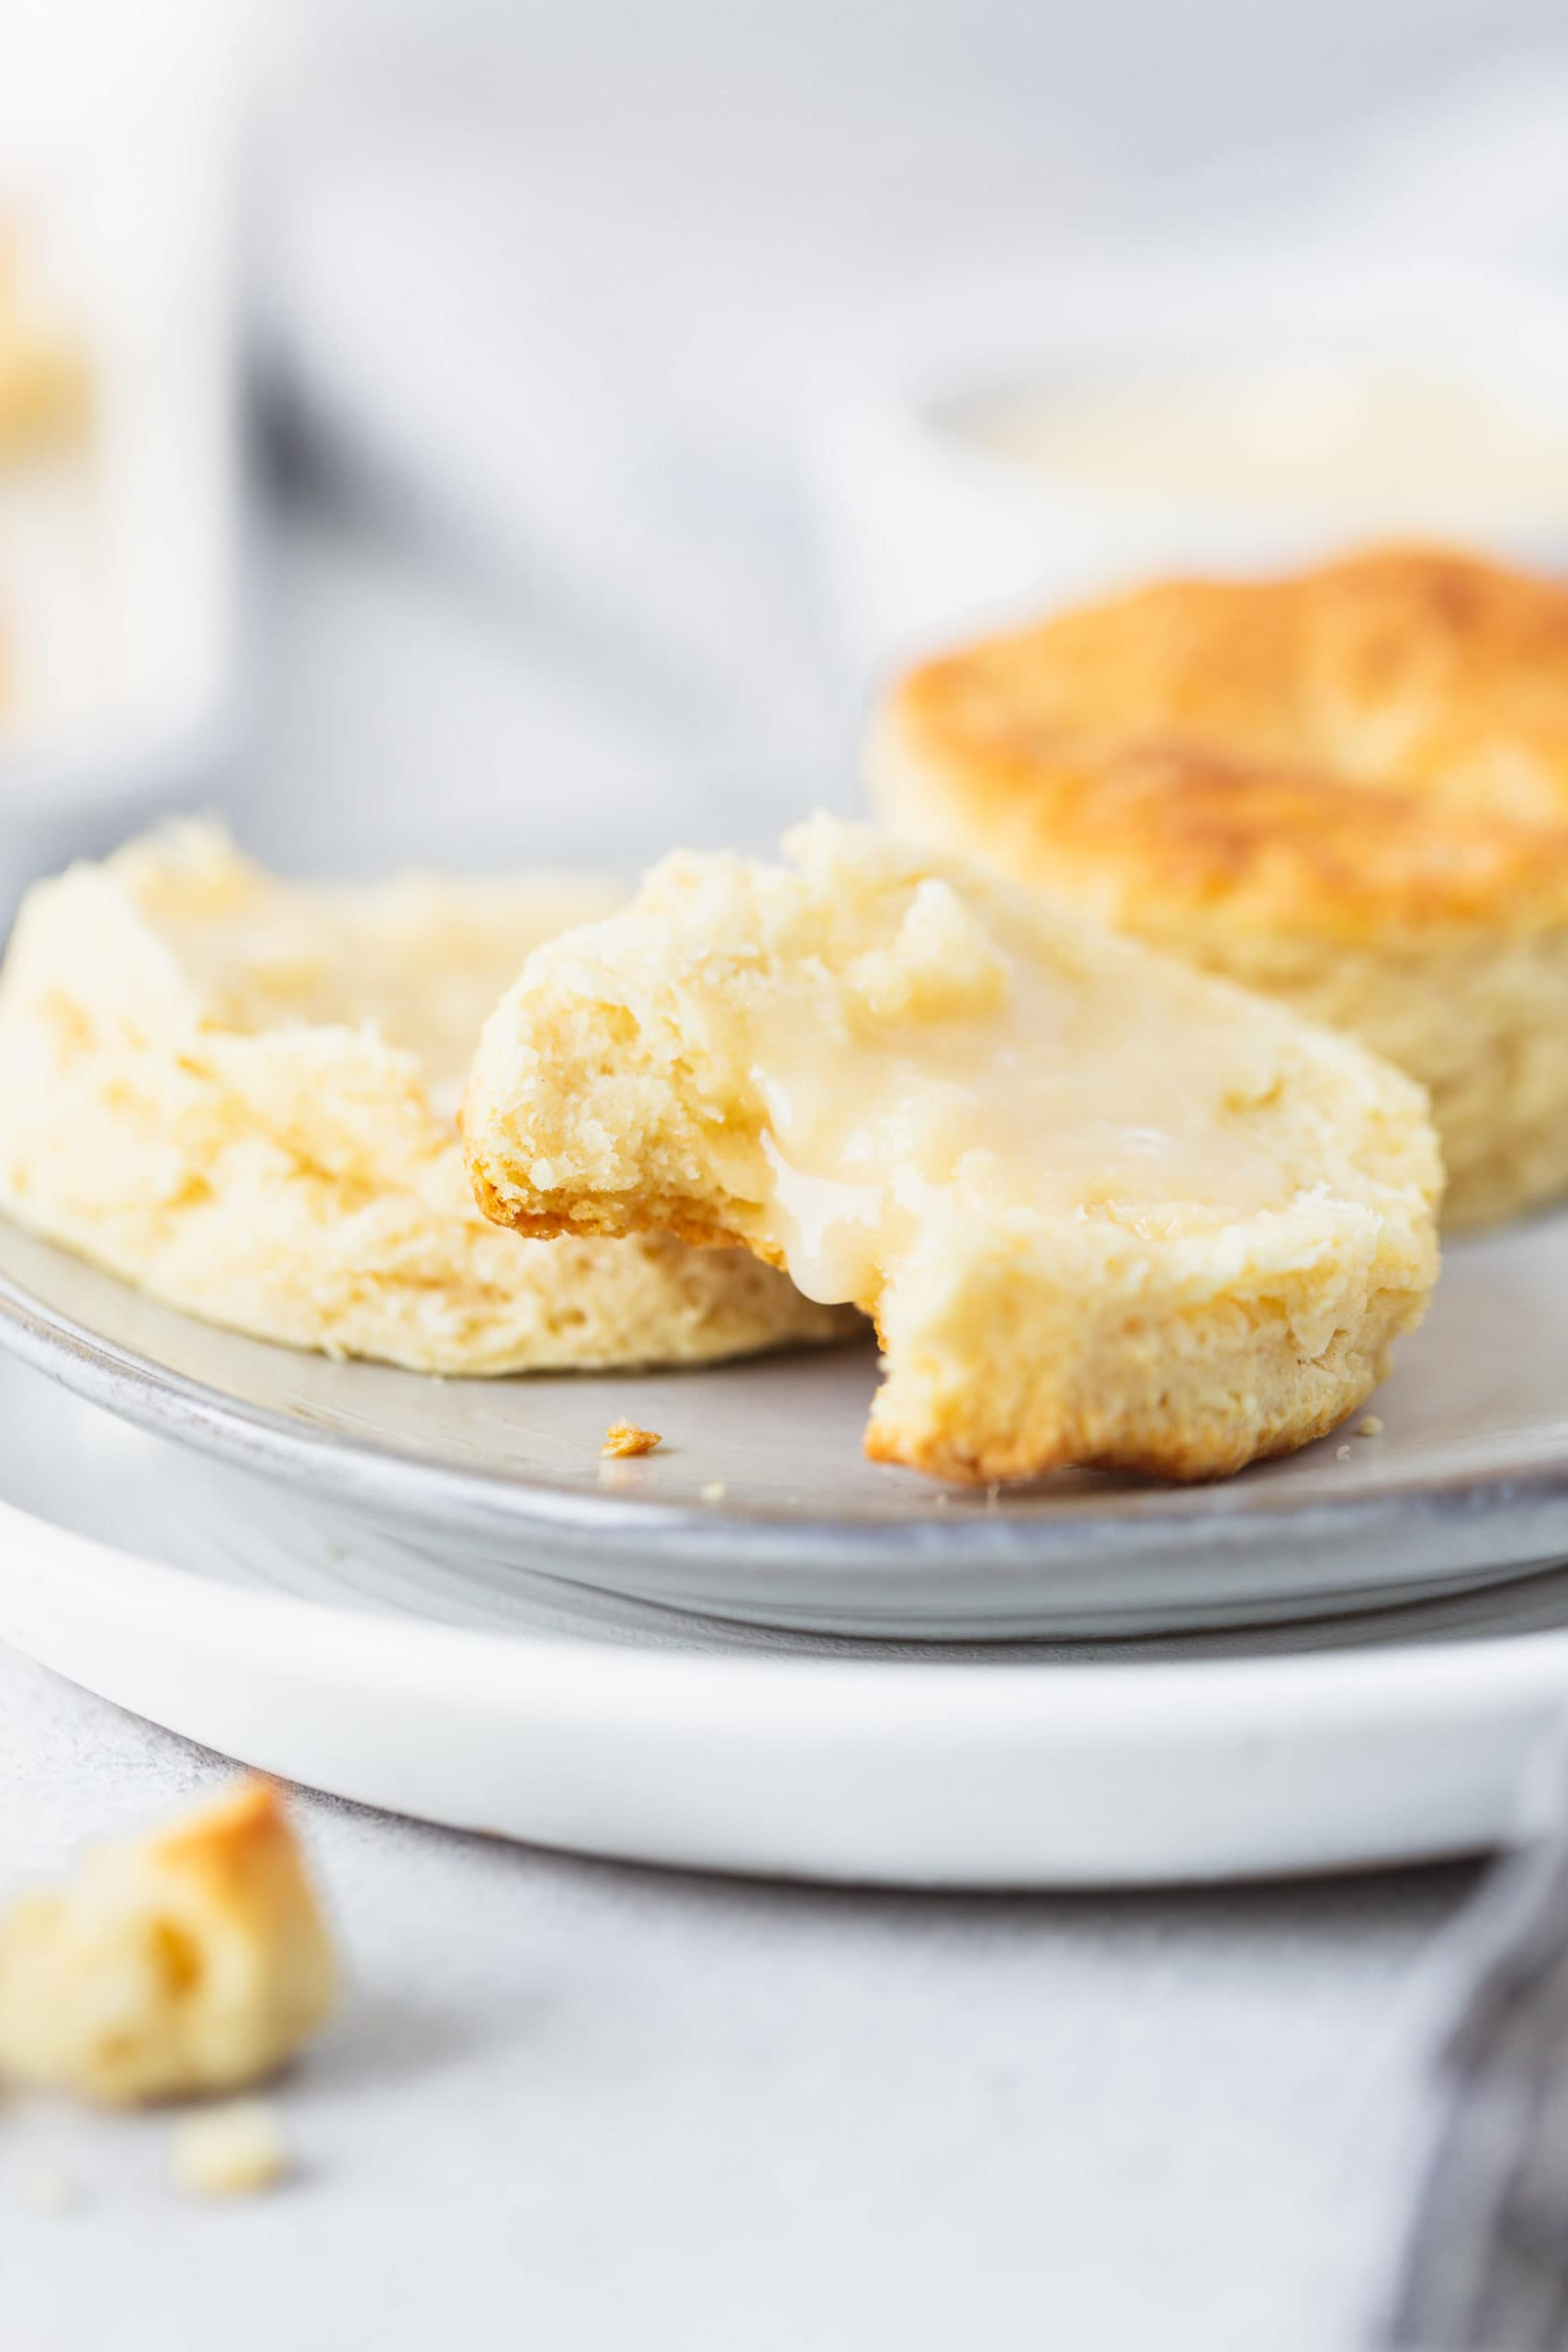 Two buttermilk biscuits on a plate. One biscuit is broken in half and has been spread with honey butter. A bite has been taken from one of the halves.